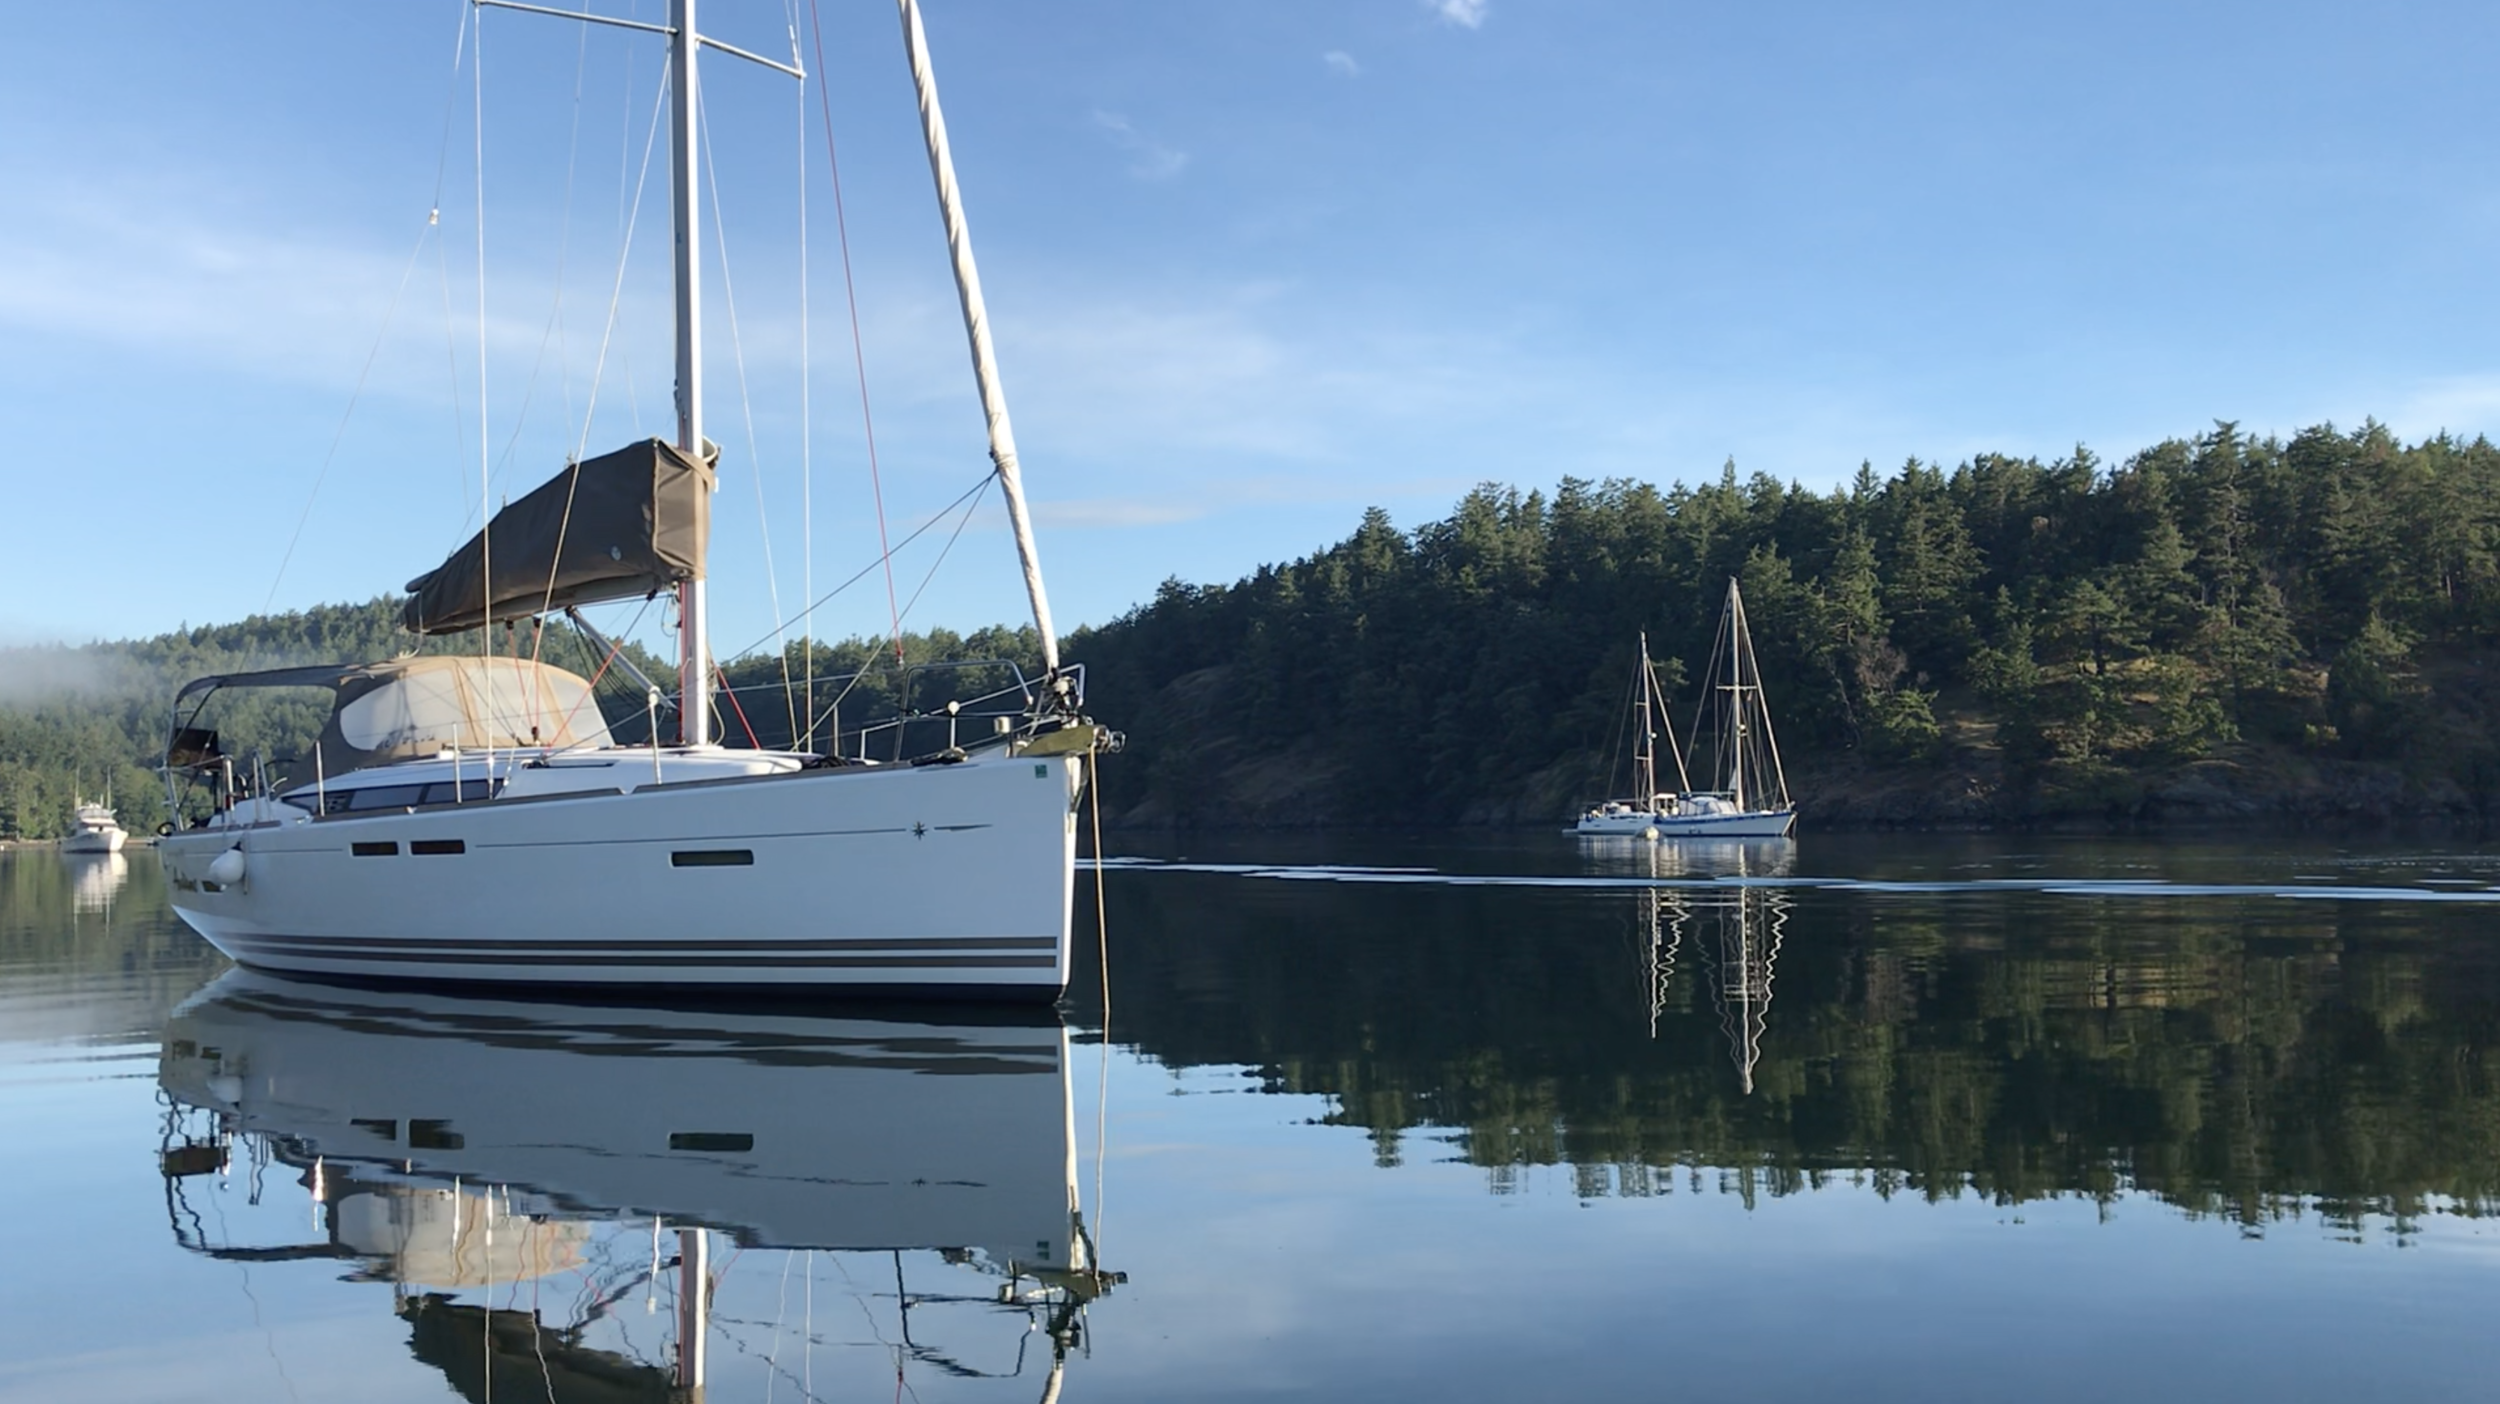 Not sure about sailing? Book a skippered charter and participate as much or as little as you want while you cruise the San Juans, hiking, fishing, dining out or just staying in the boat for your private BBQ.